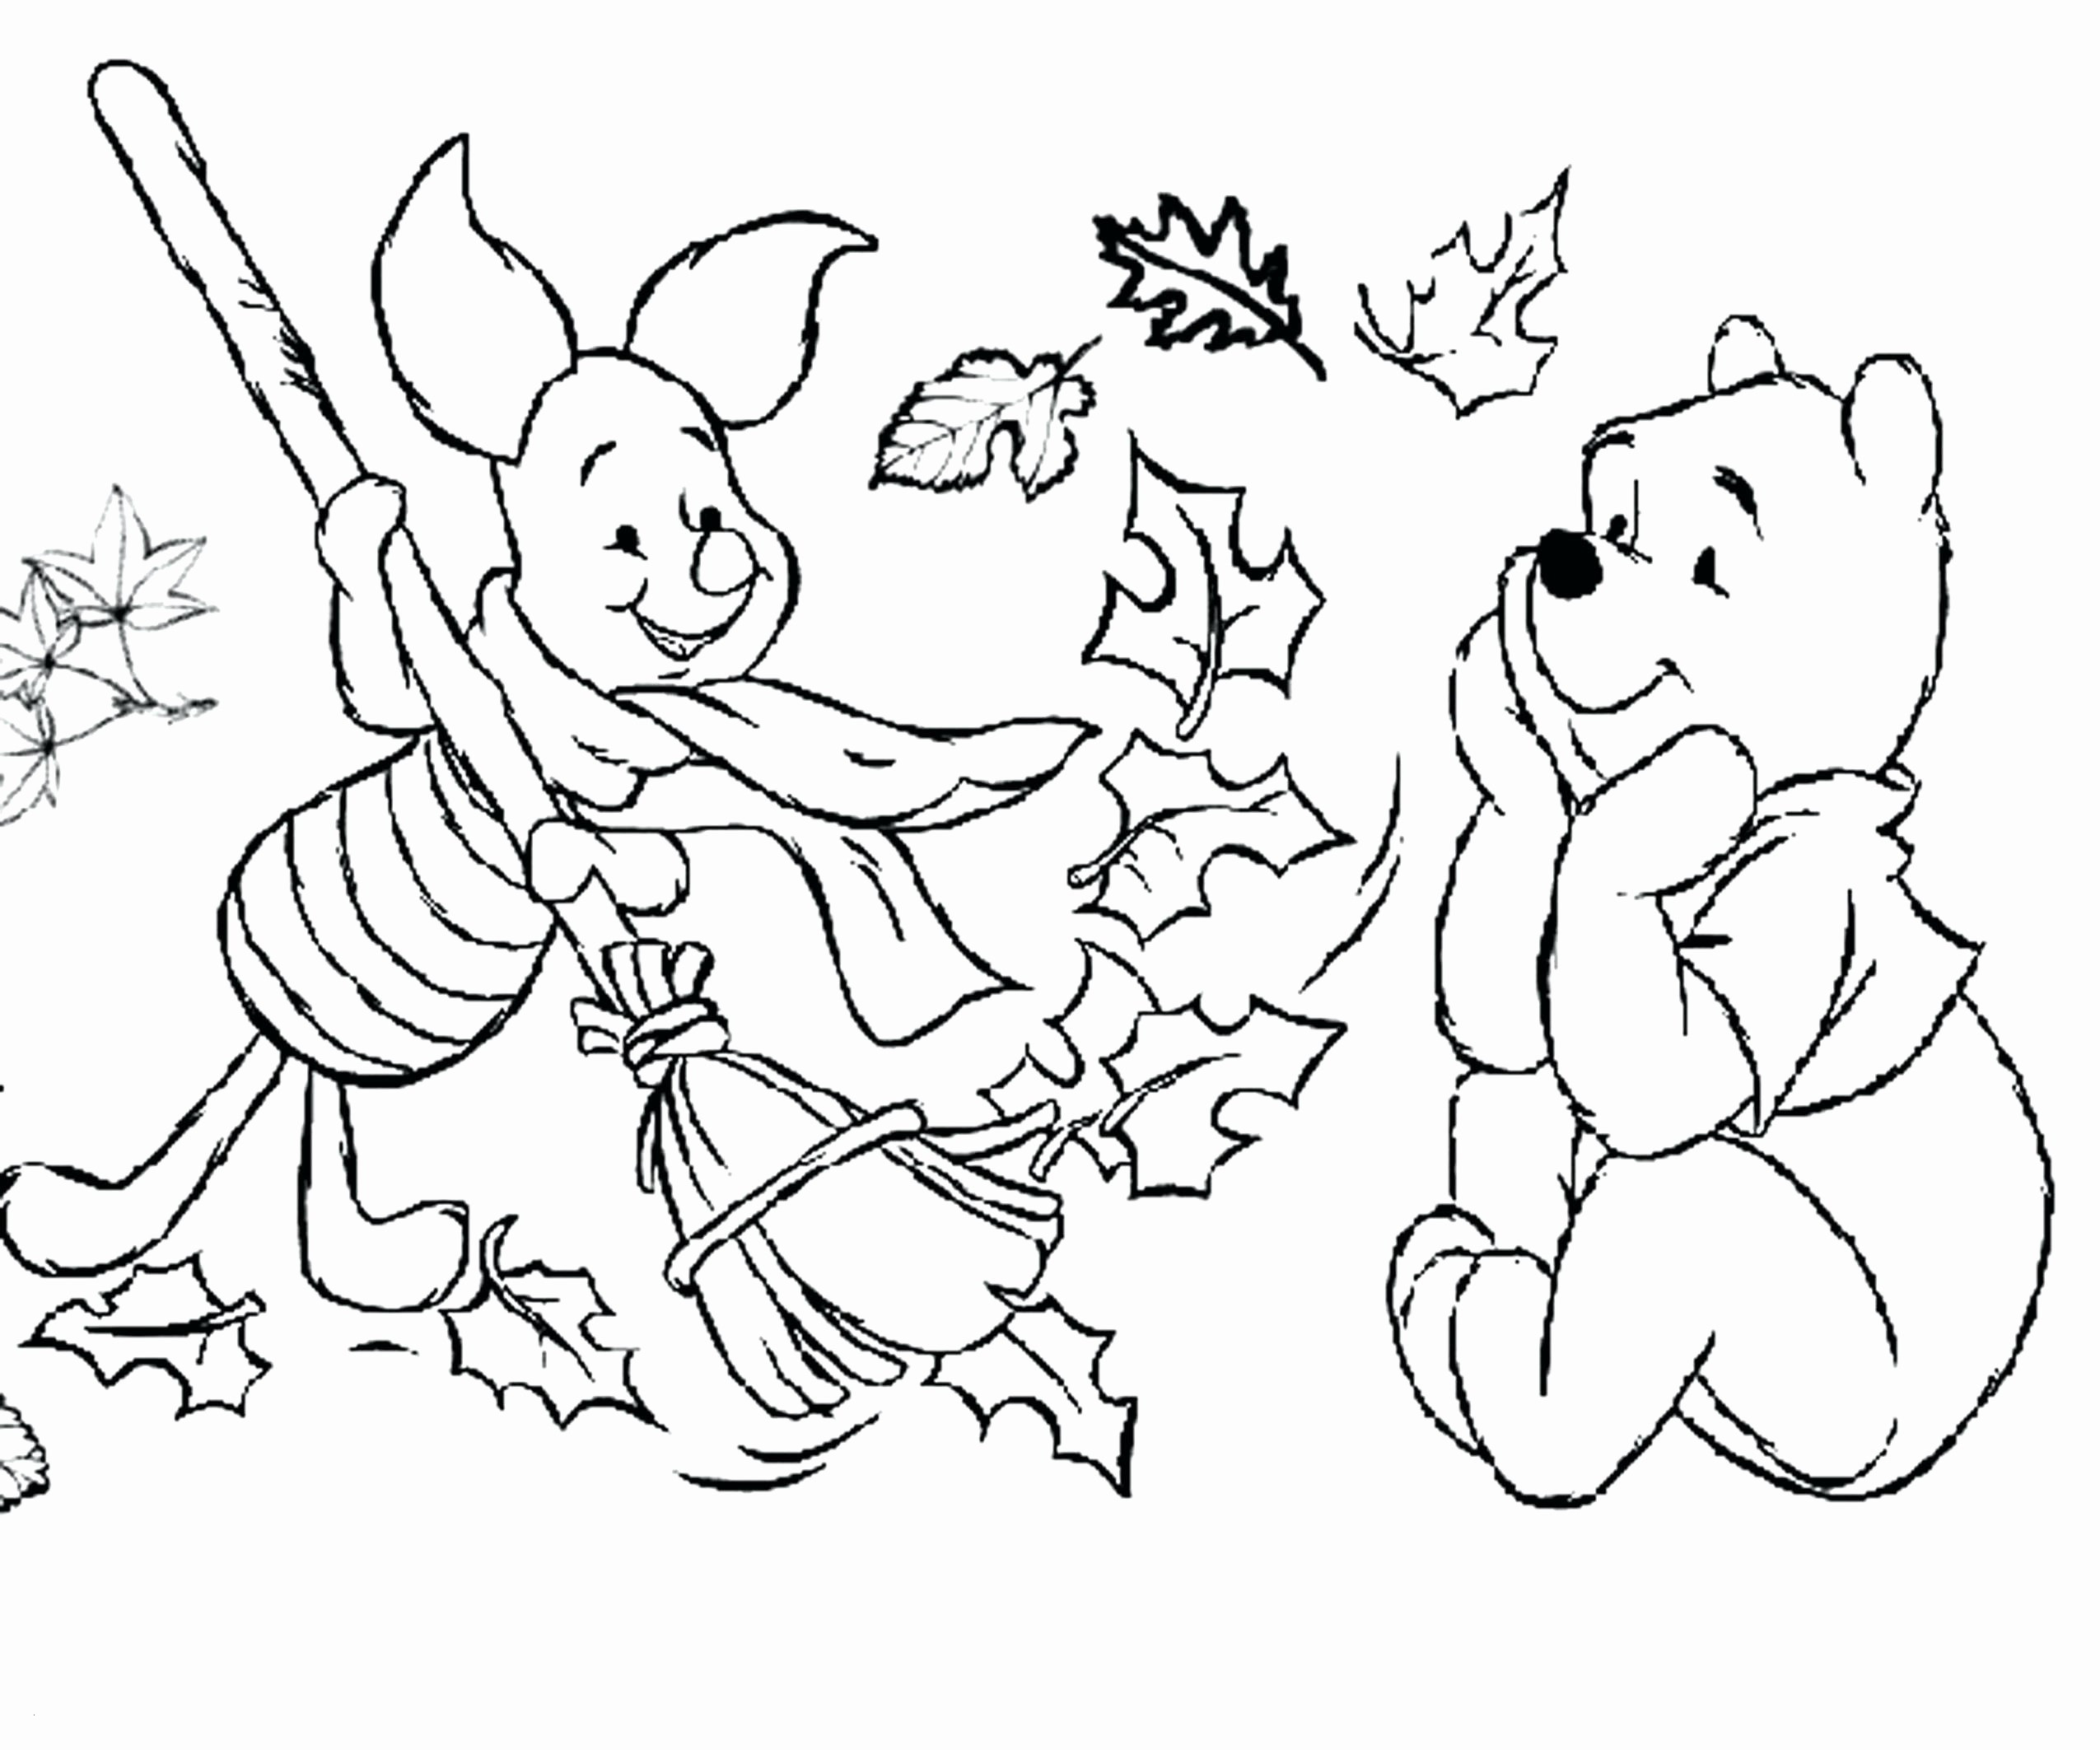 monkey coloring pages for preschoolers Collection-Coloring Pages Monkey Monkey Coloring Pages for Preschoolers Awesome 46 Unique Gallery 15-s